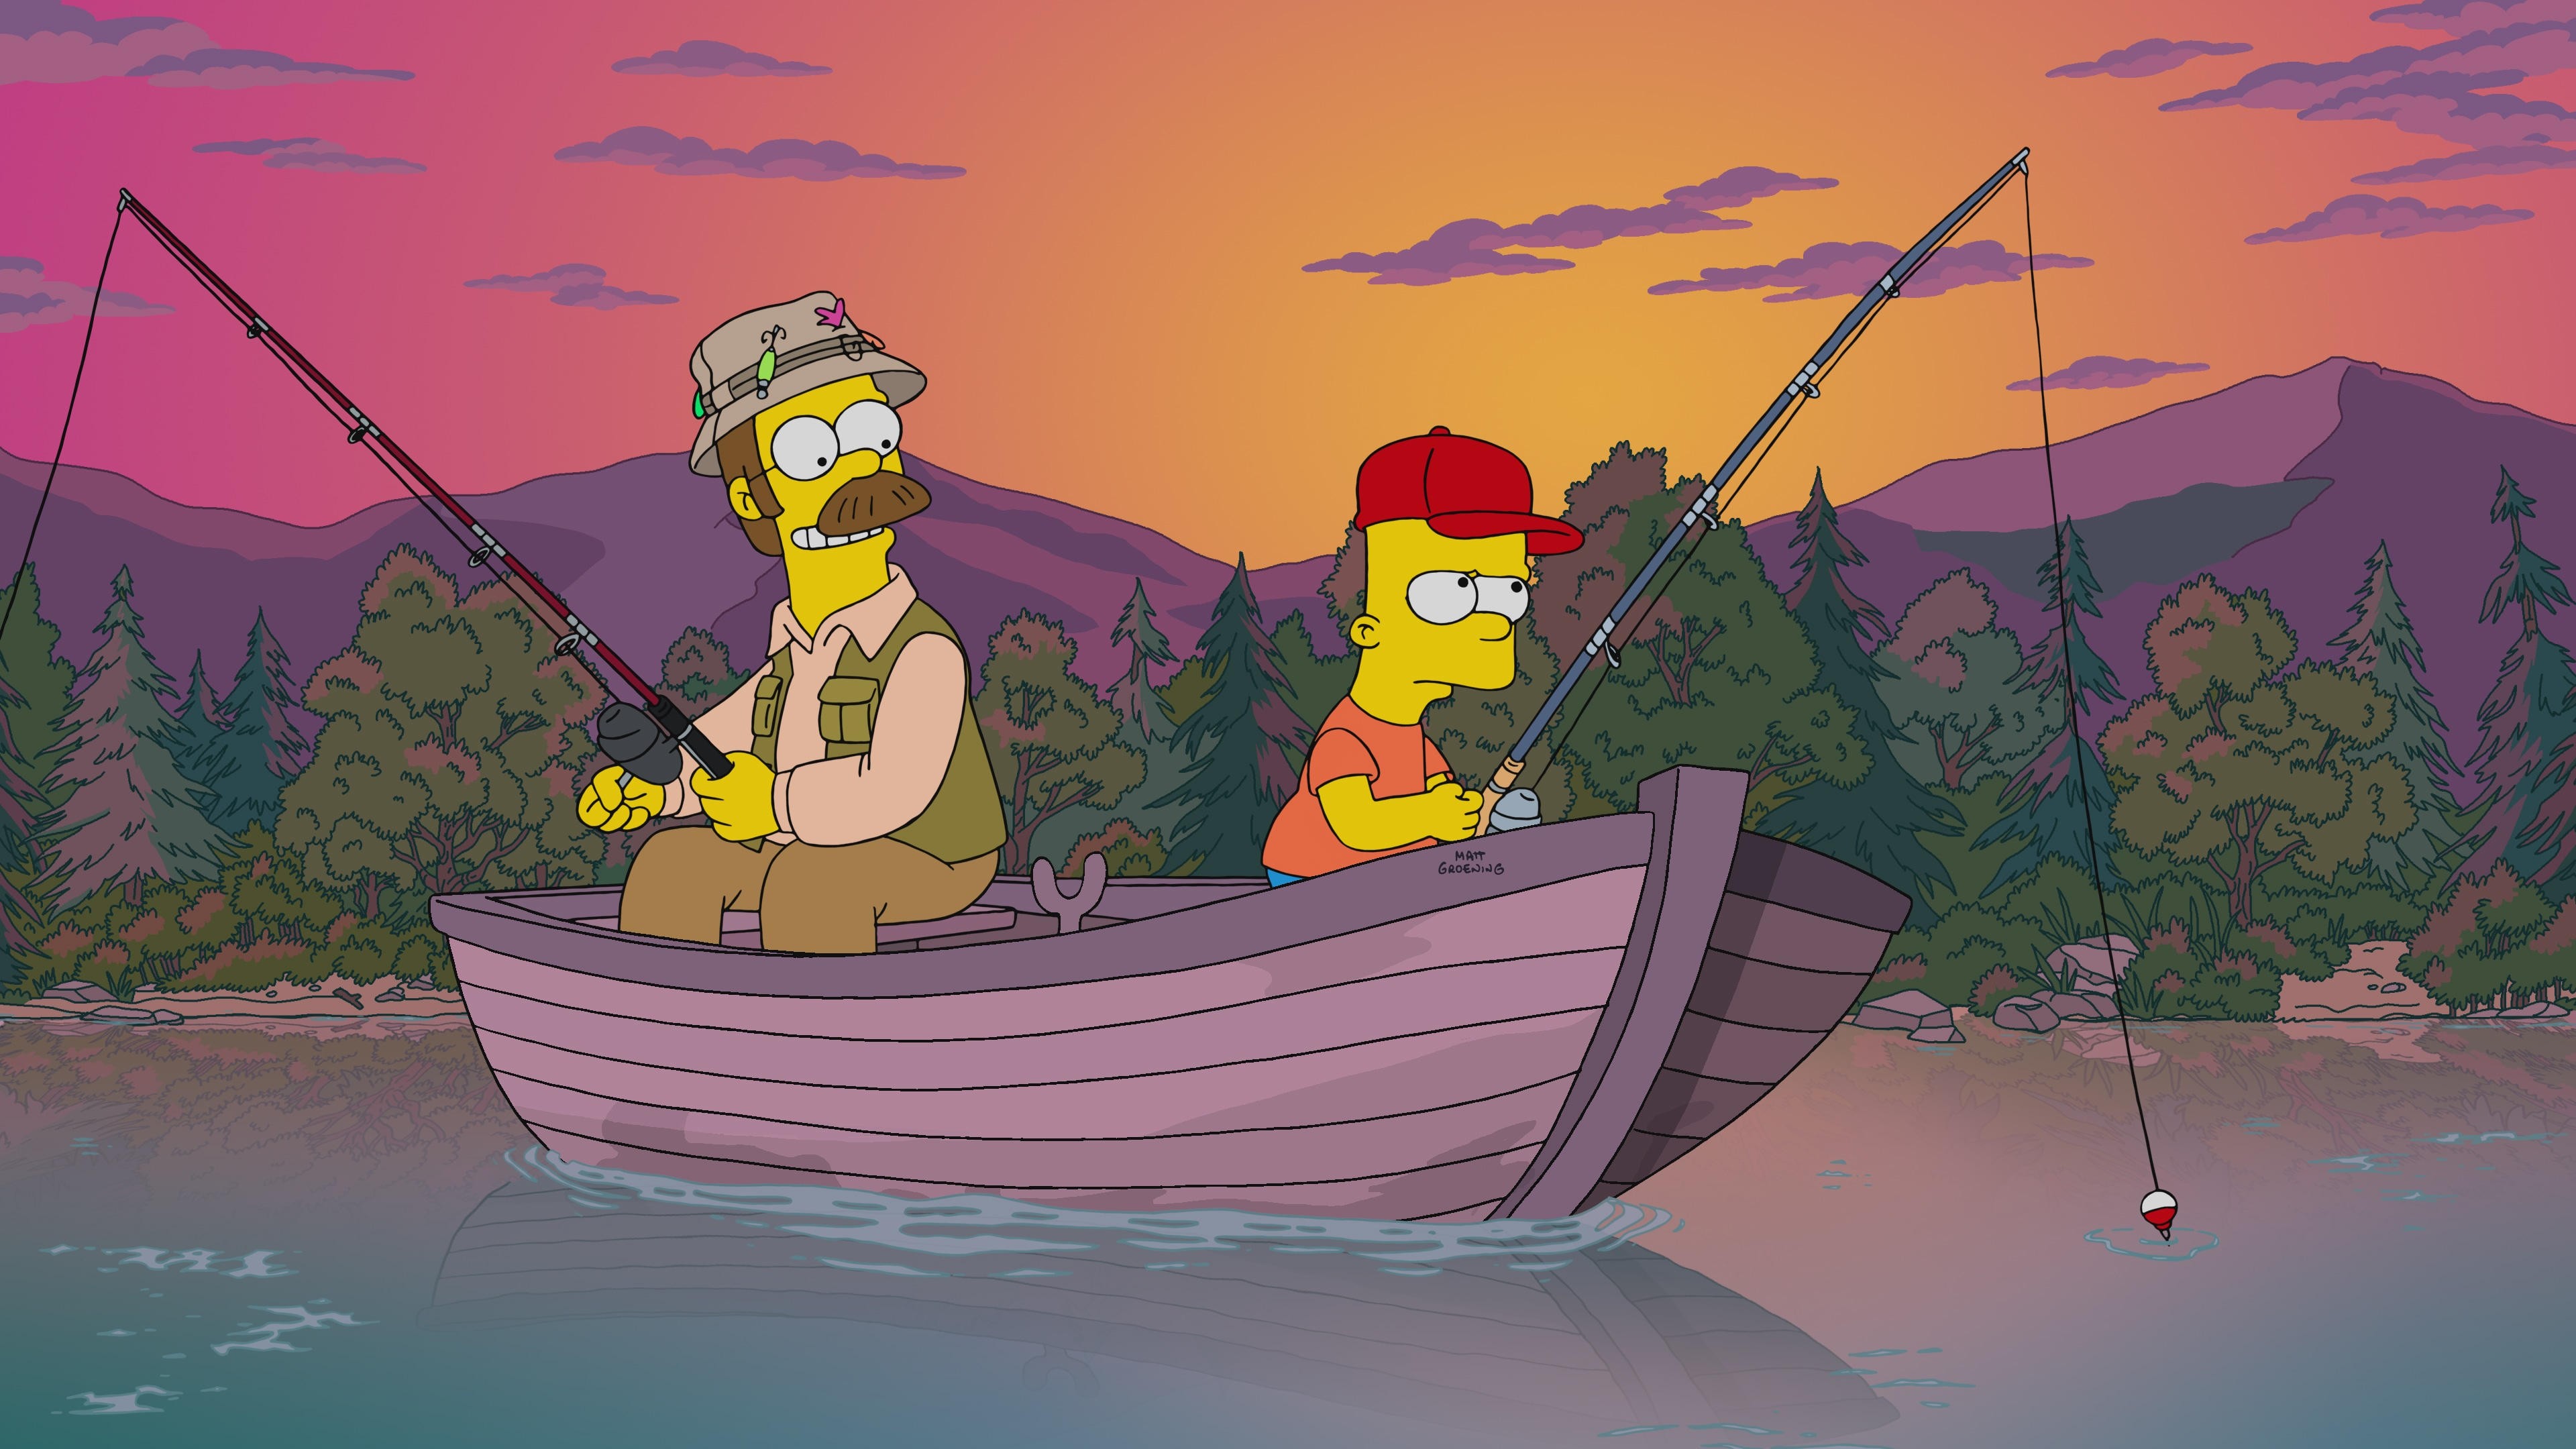 """THE SIMPSONS: Bart bonds with Ned Flanders, which leaves Homer jealous, so he retaliates by mentoring Nelson Muntz. Then, a heroic act by Homer makes Bart look up to him again in the """"Better Off Ned"""" episode of THE SIMPSONS."""